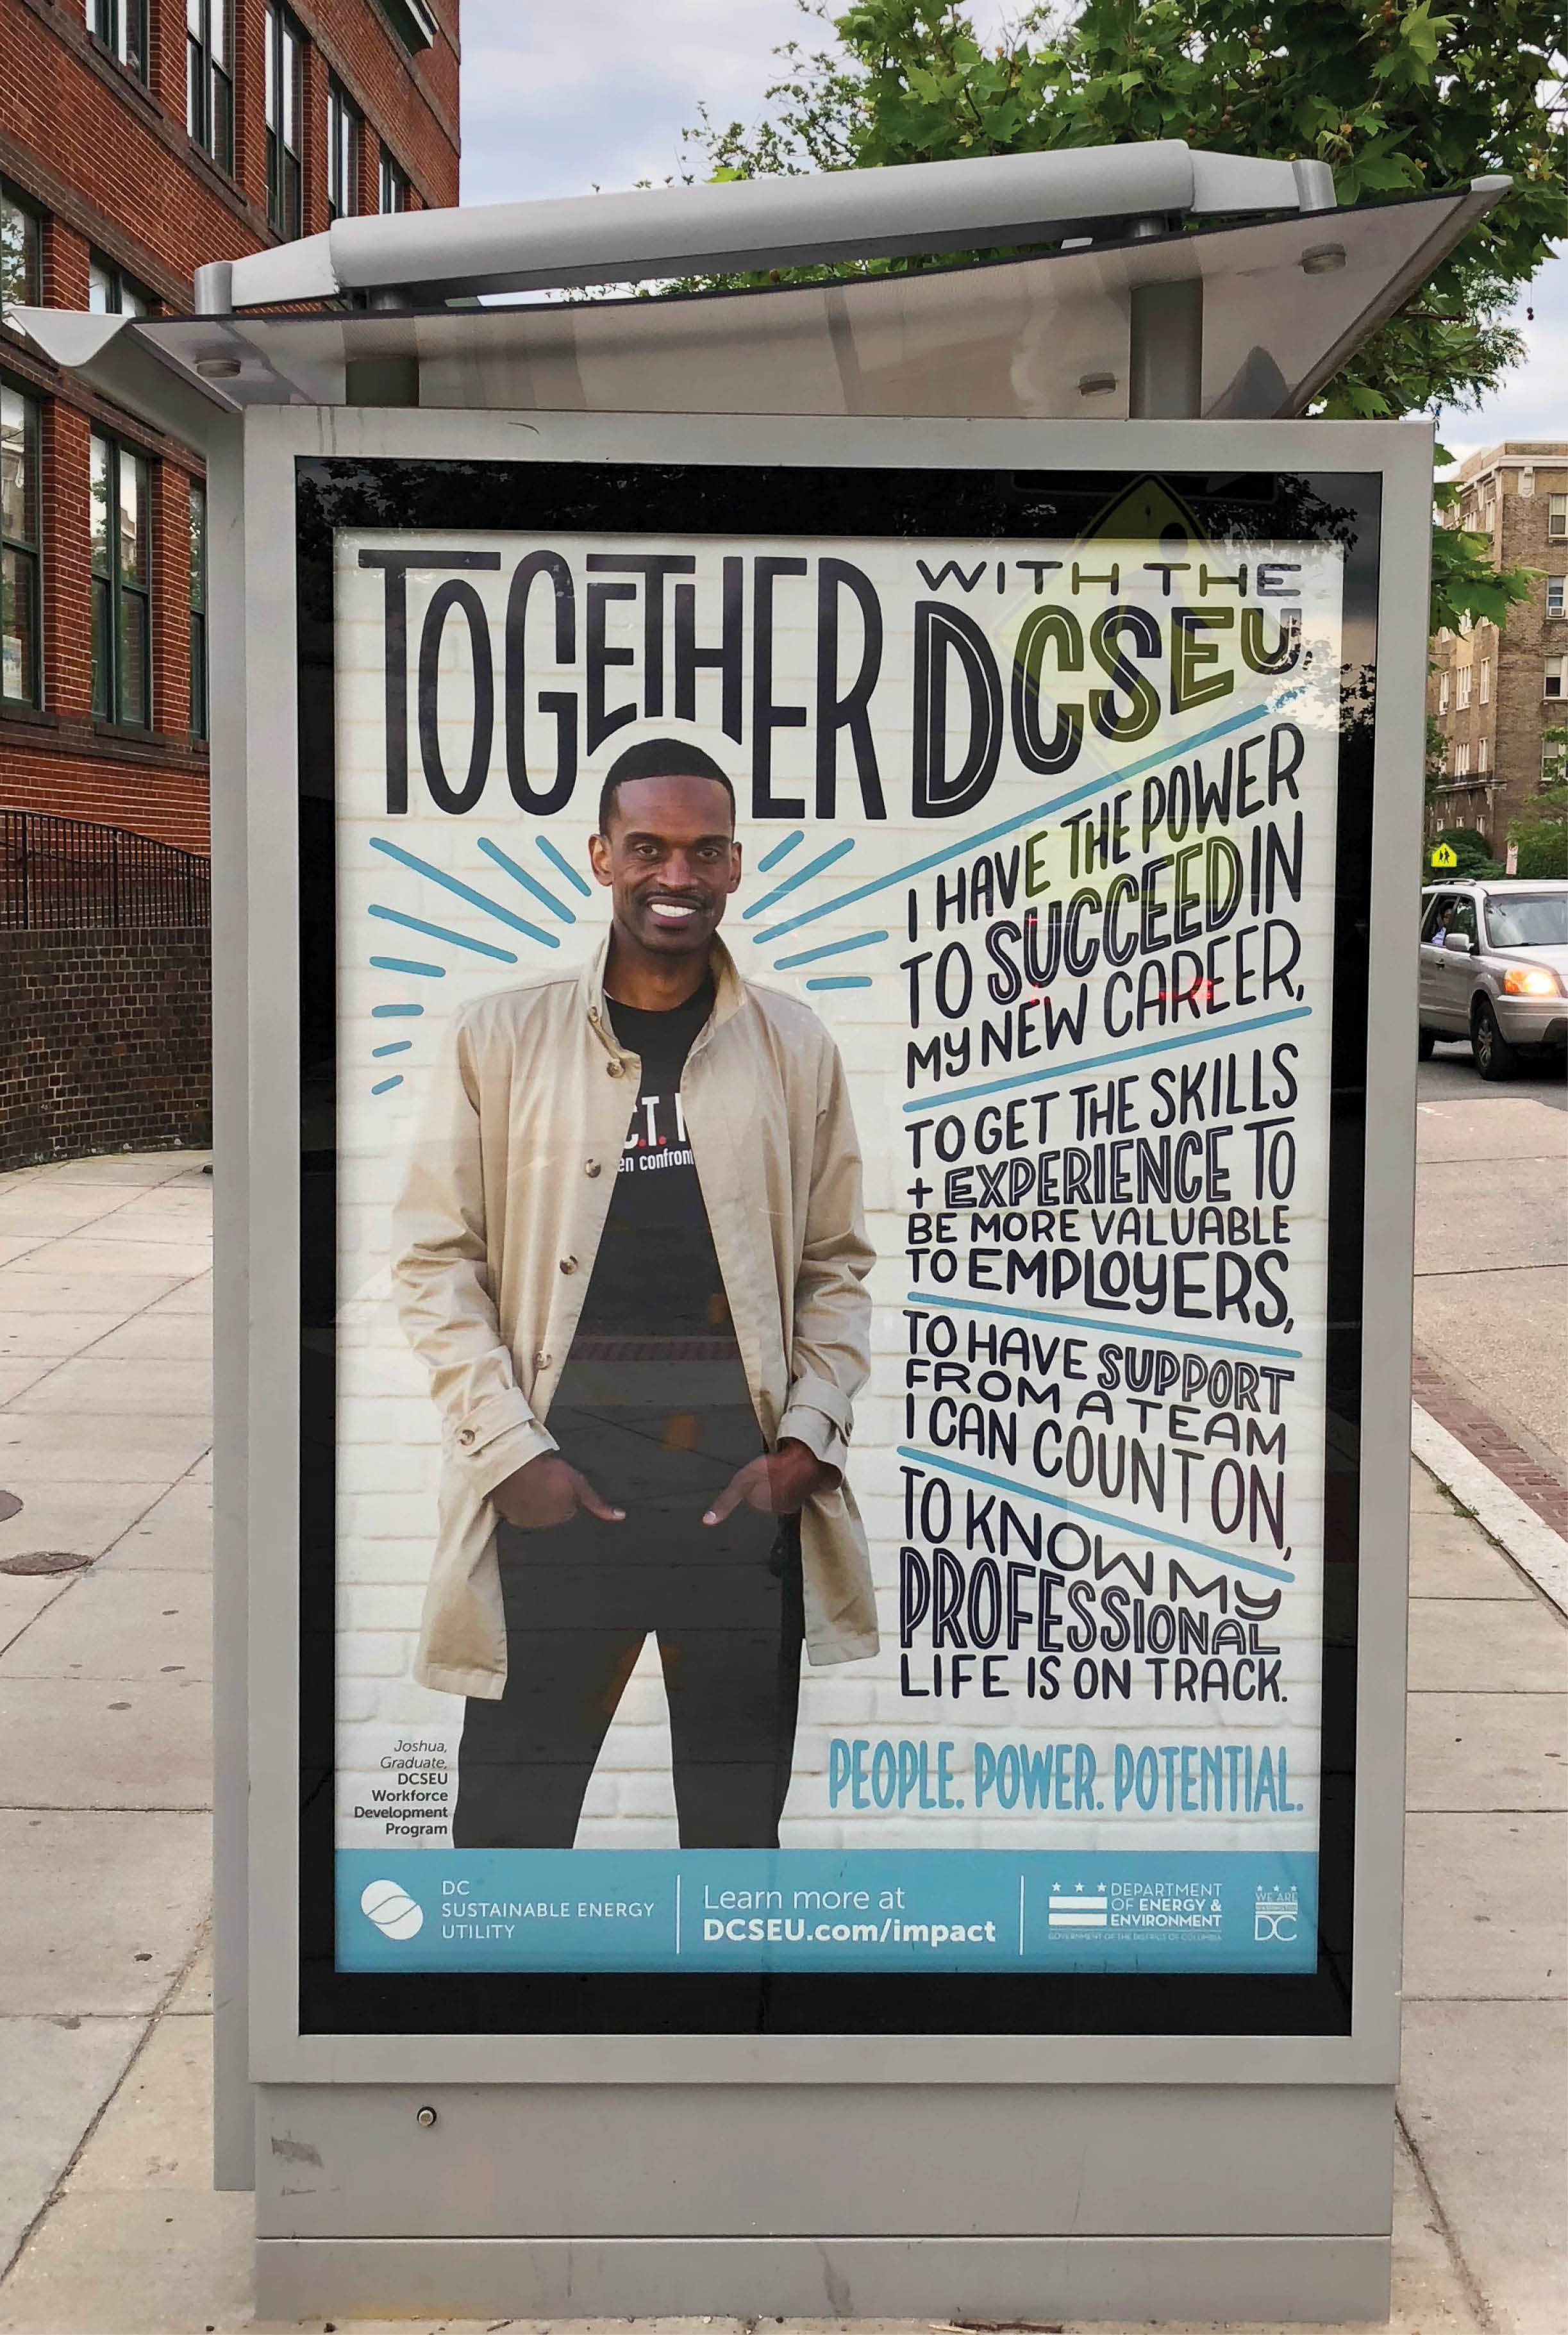 Image of bus shelter poster, featuring a man smiling with his hands in his pockets. He stands against a while wall and is surrounded by blue hand lettering featuring his testimonial about using the DCSEU workforce development programs.